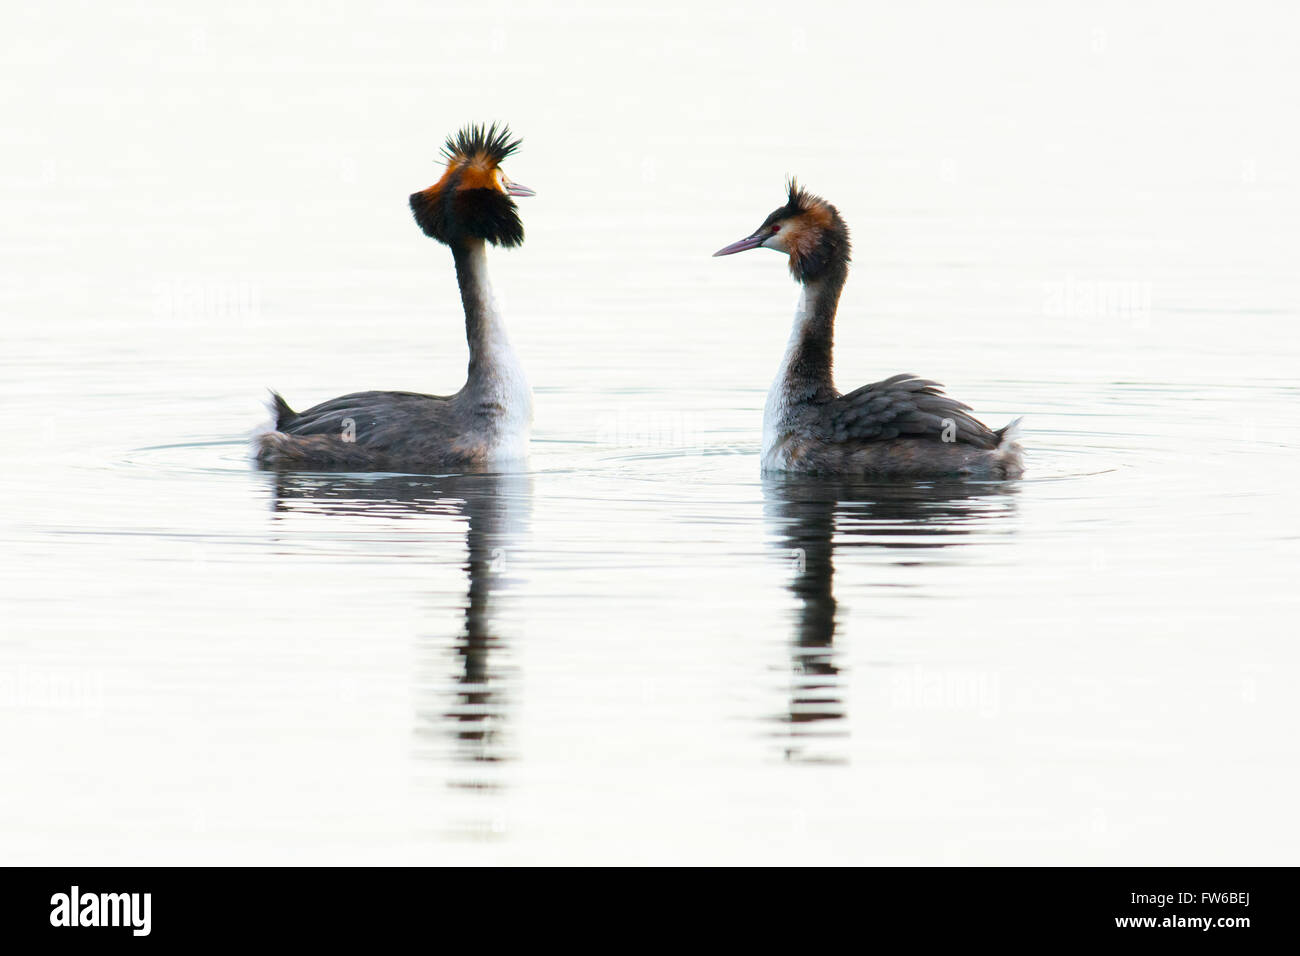 Great crested grebes performing a courtship display - Stock Image